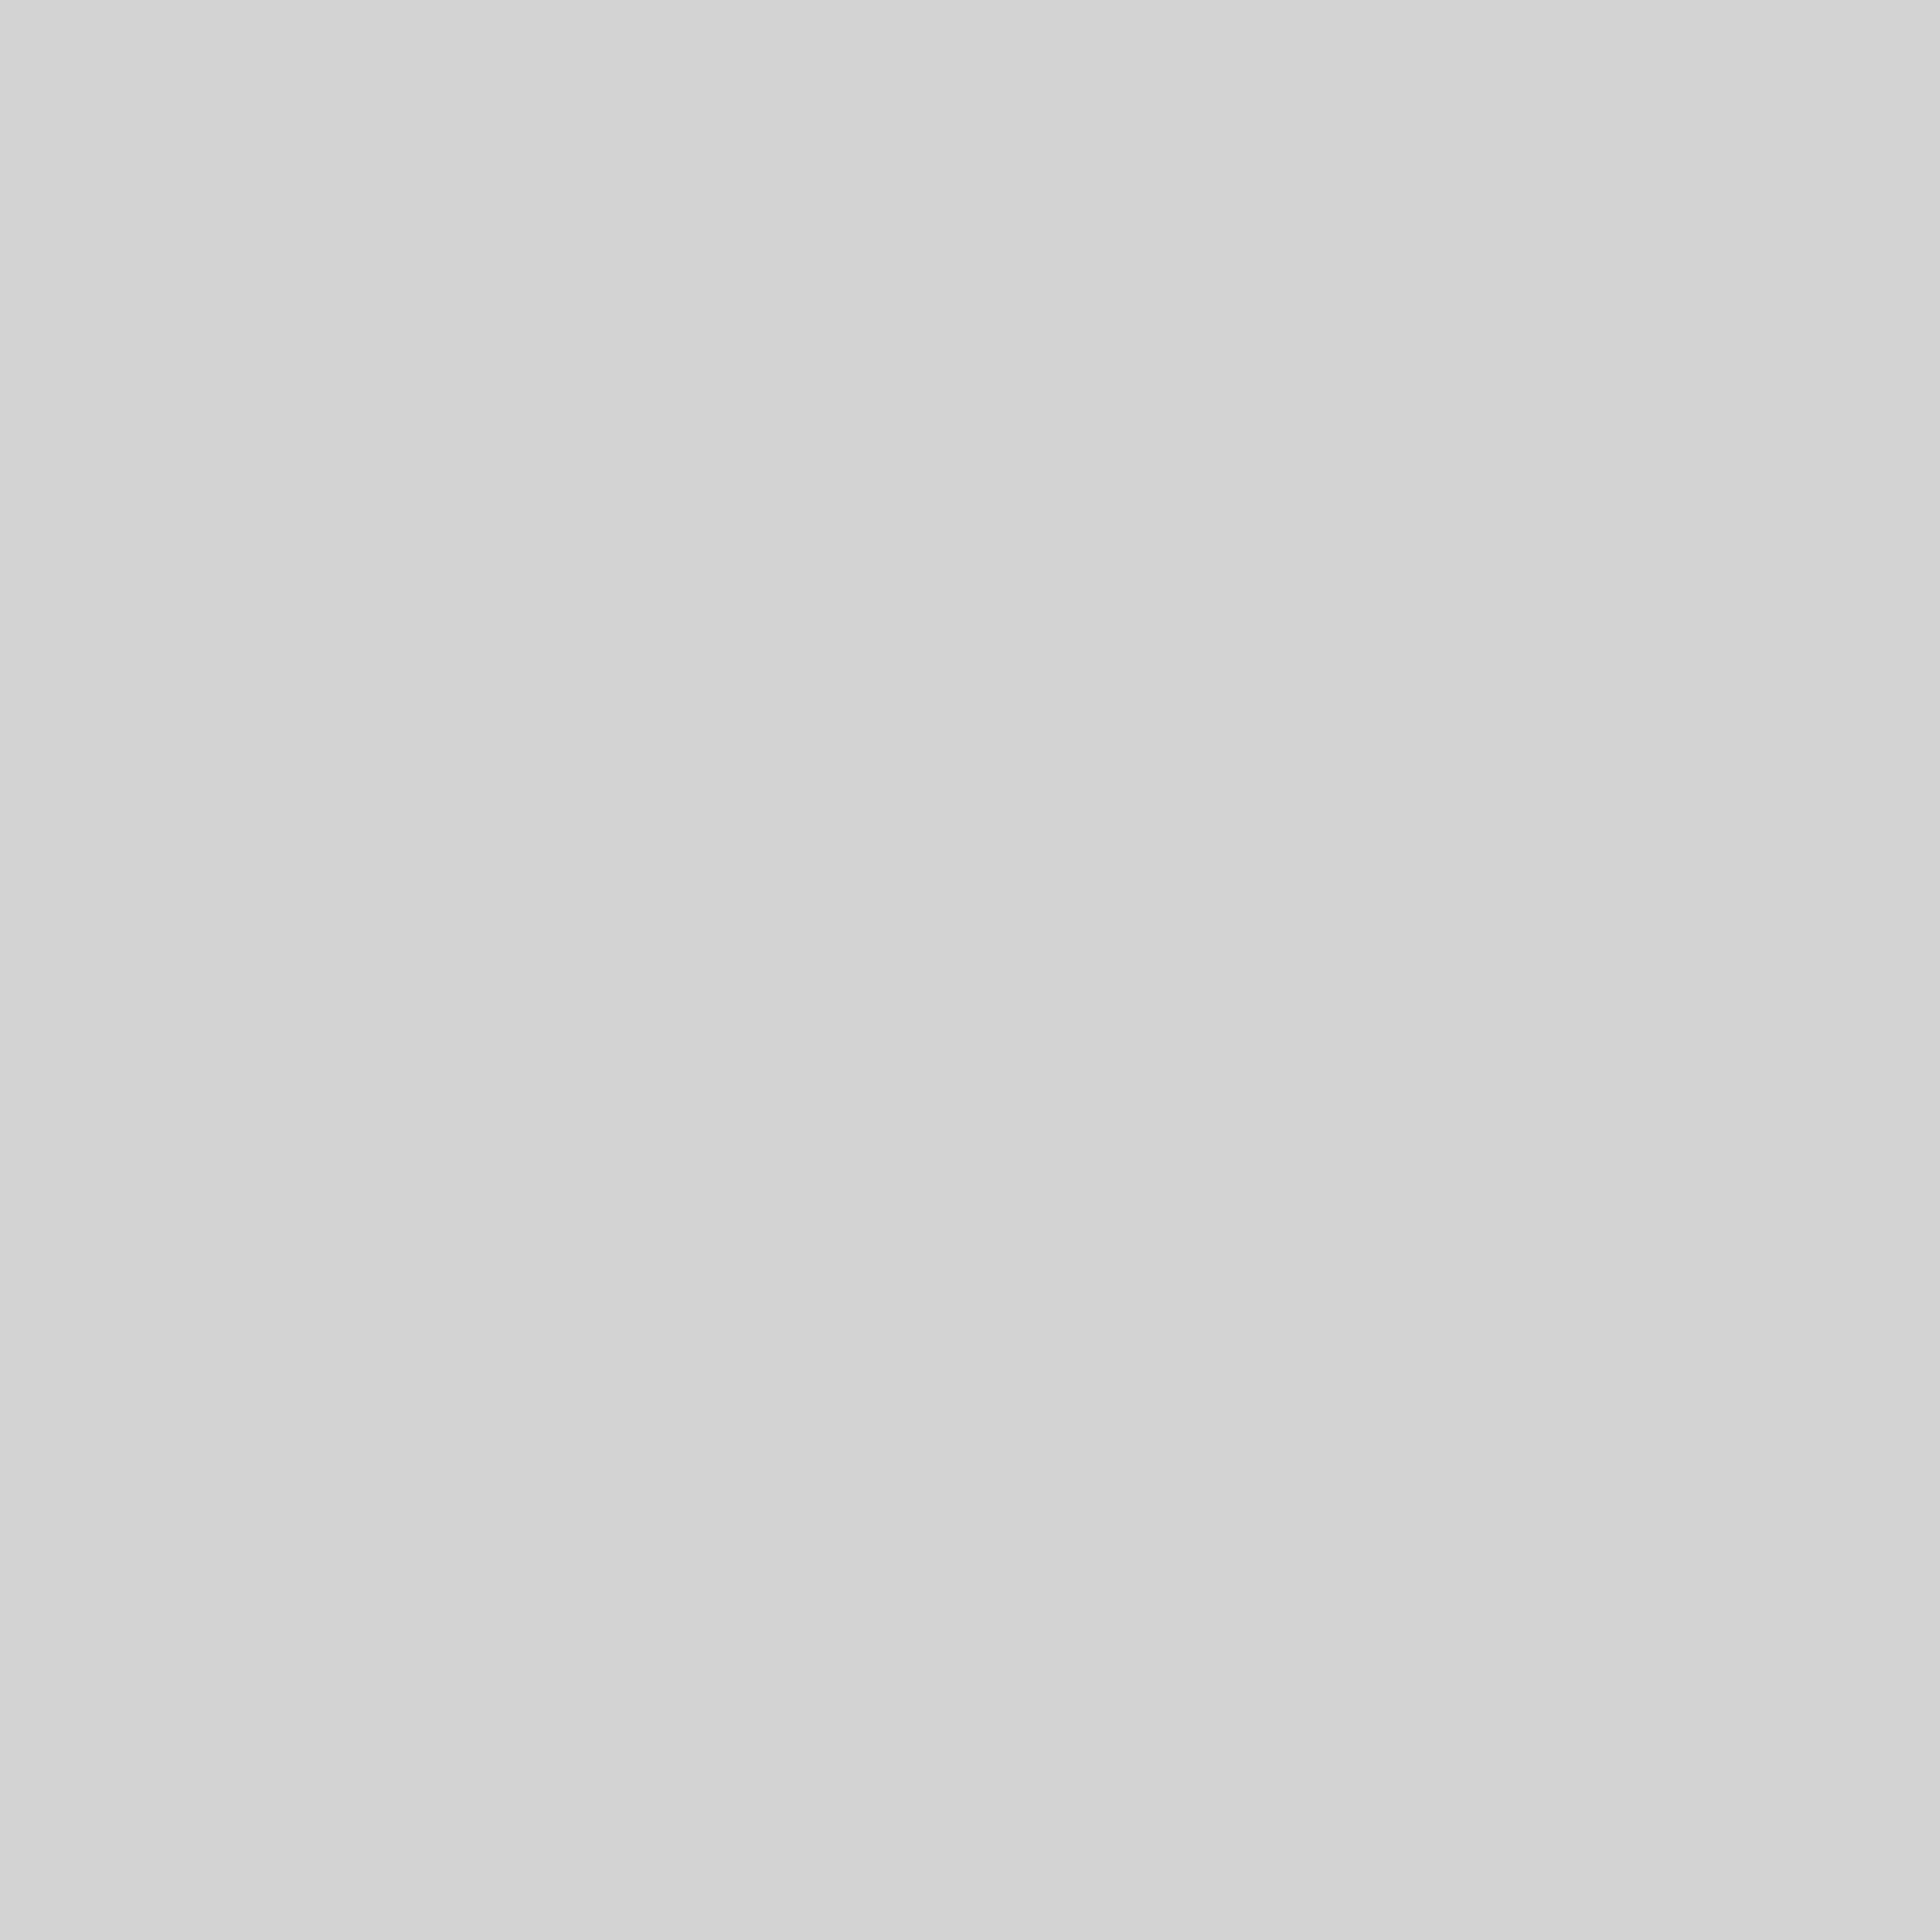 2732x2732 Light Gray Solid Color Background